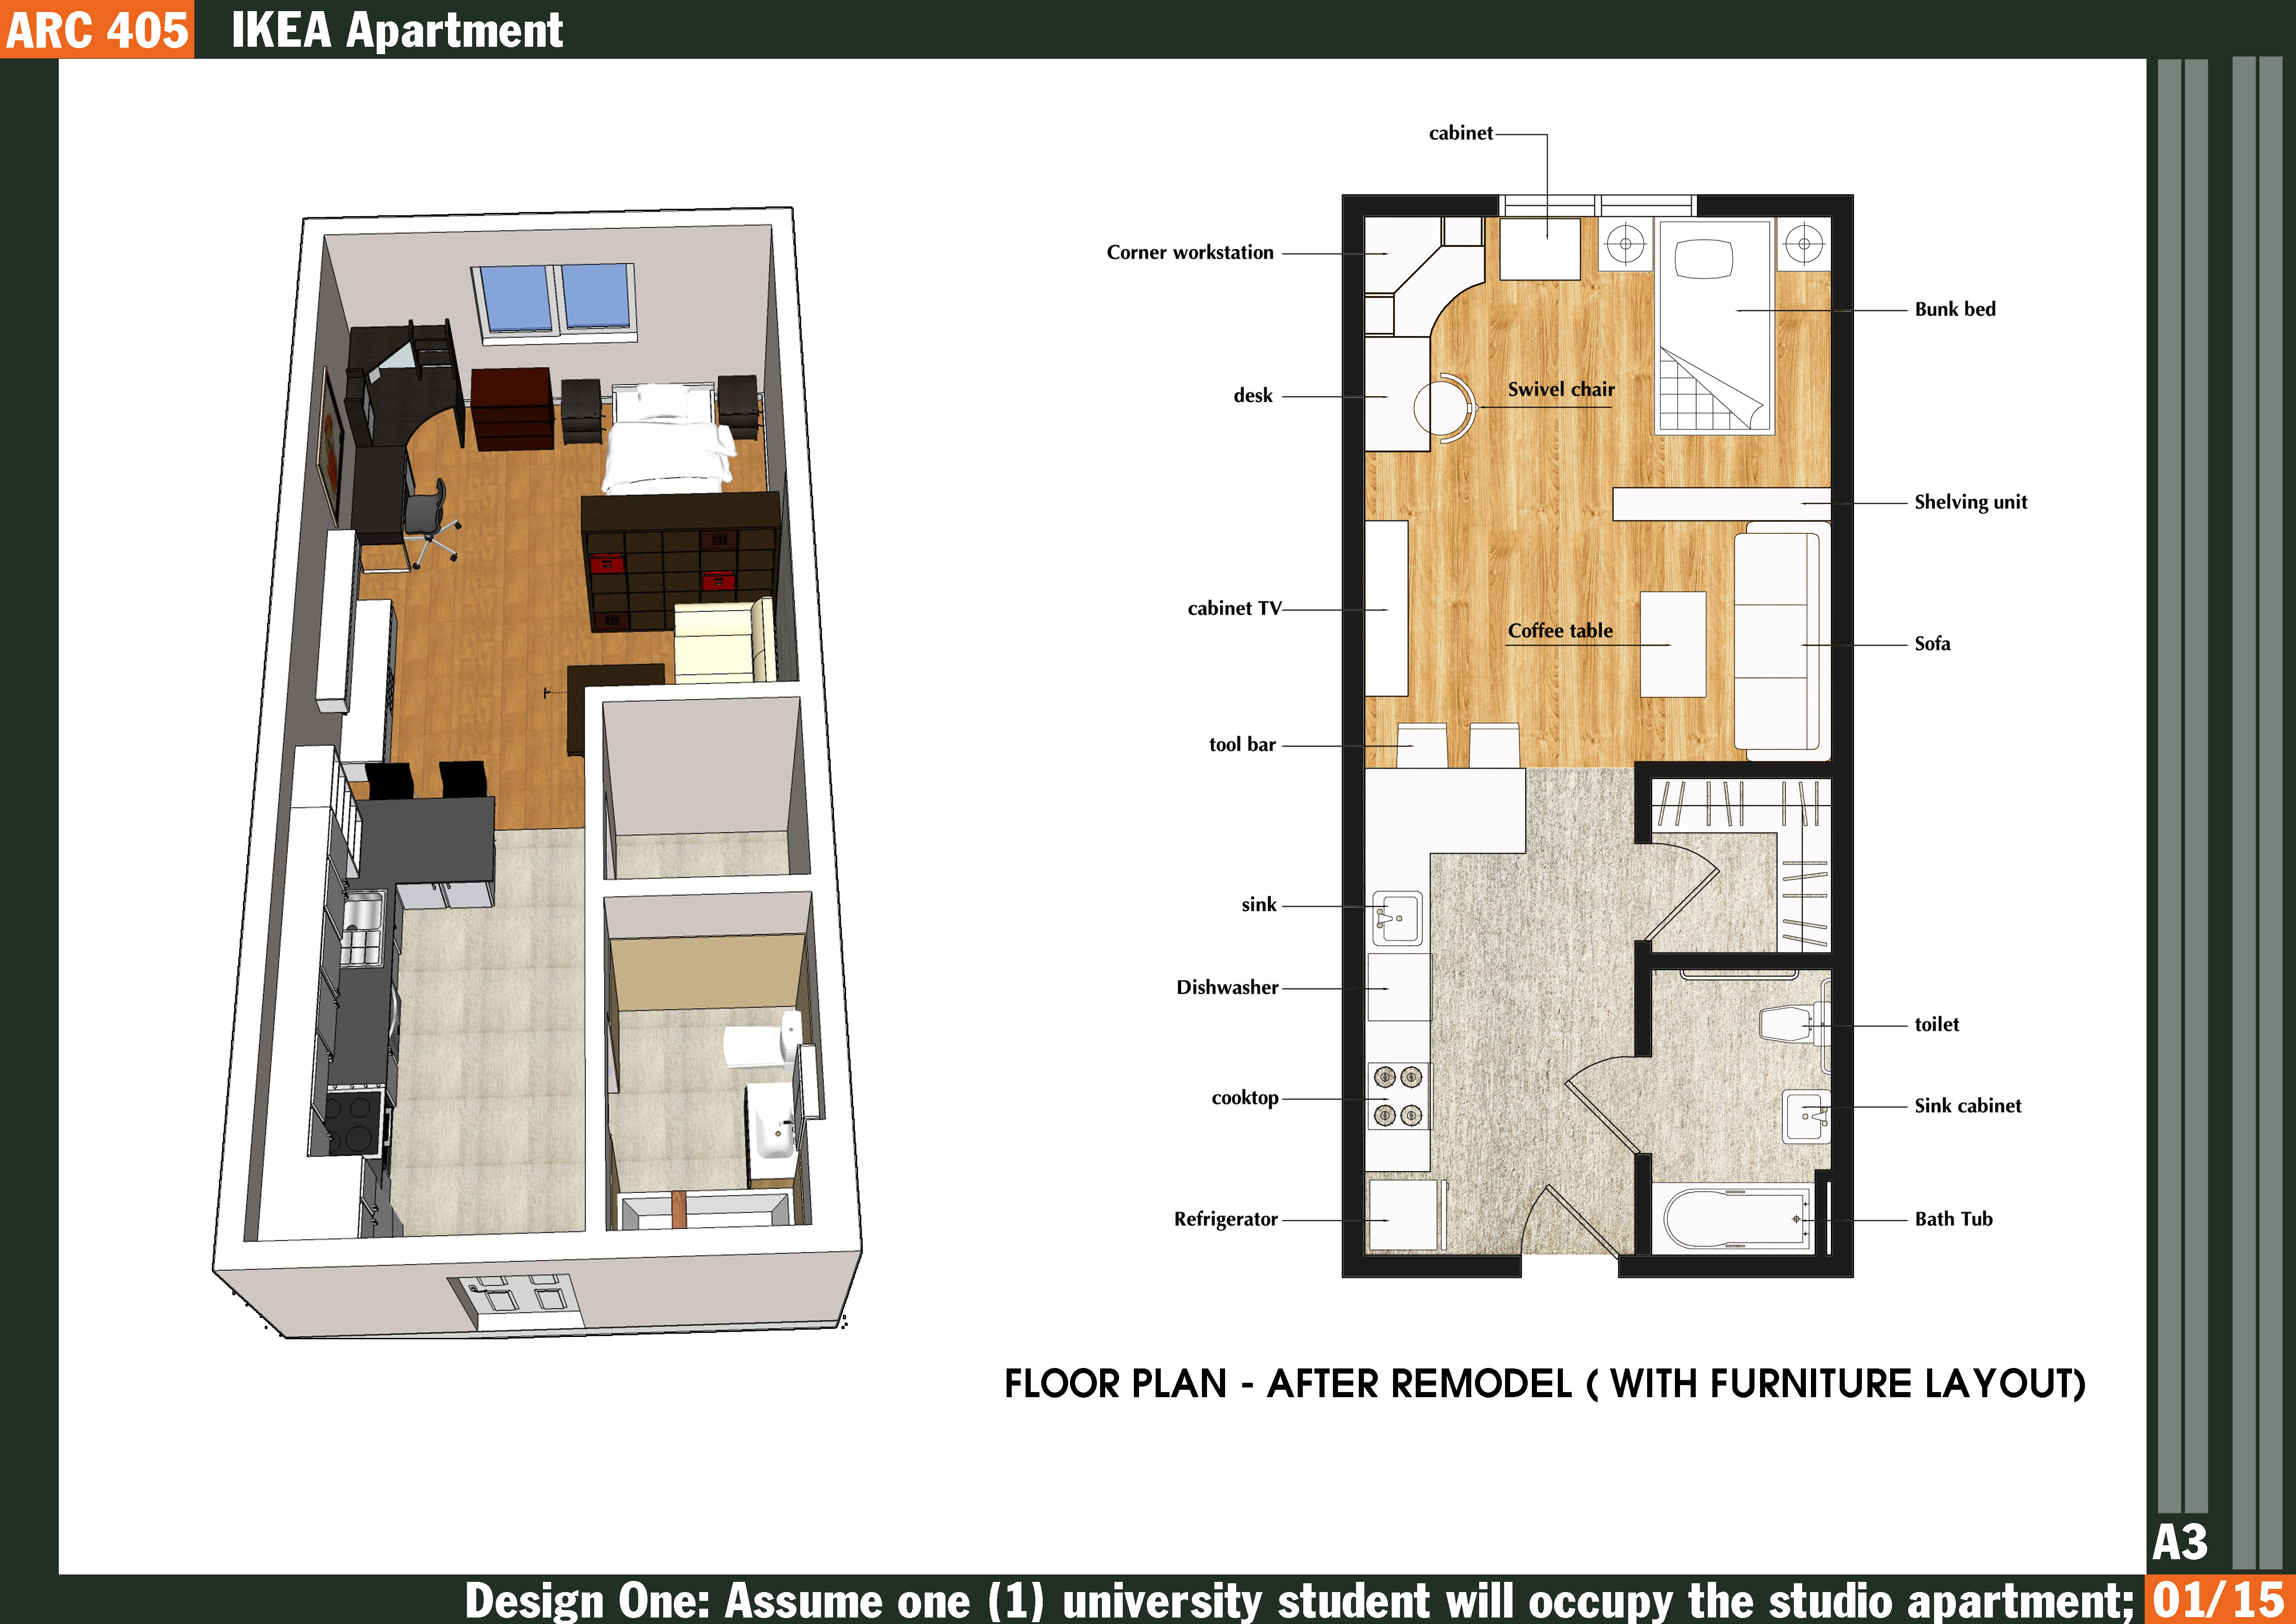 ikea studio apartment layouts ikea apartment 2nd place